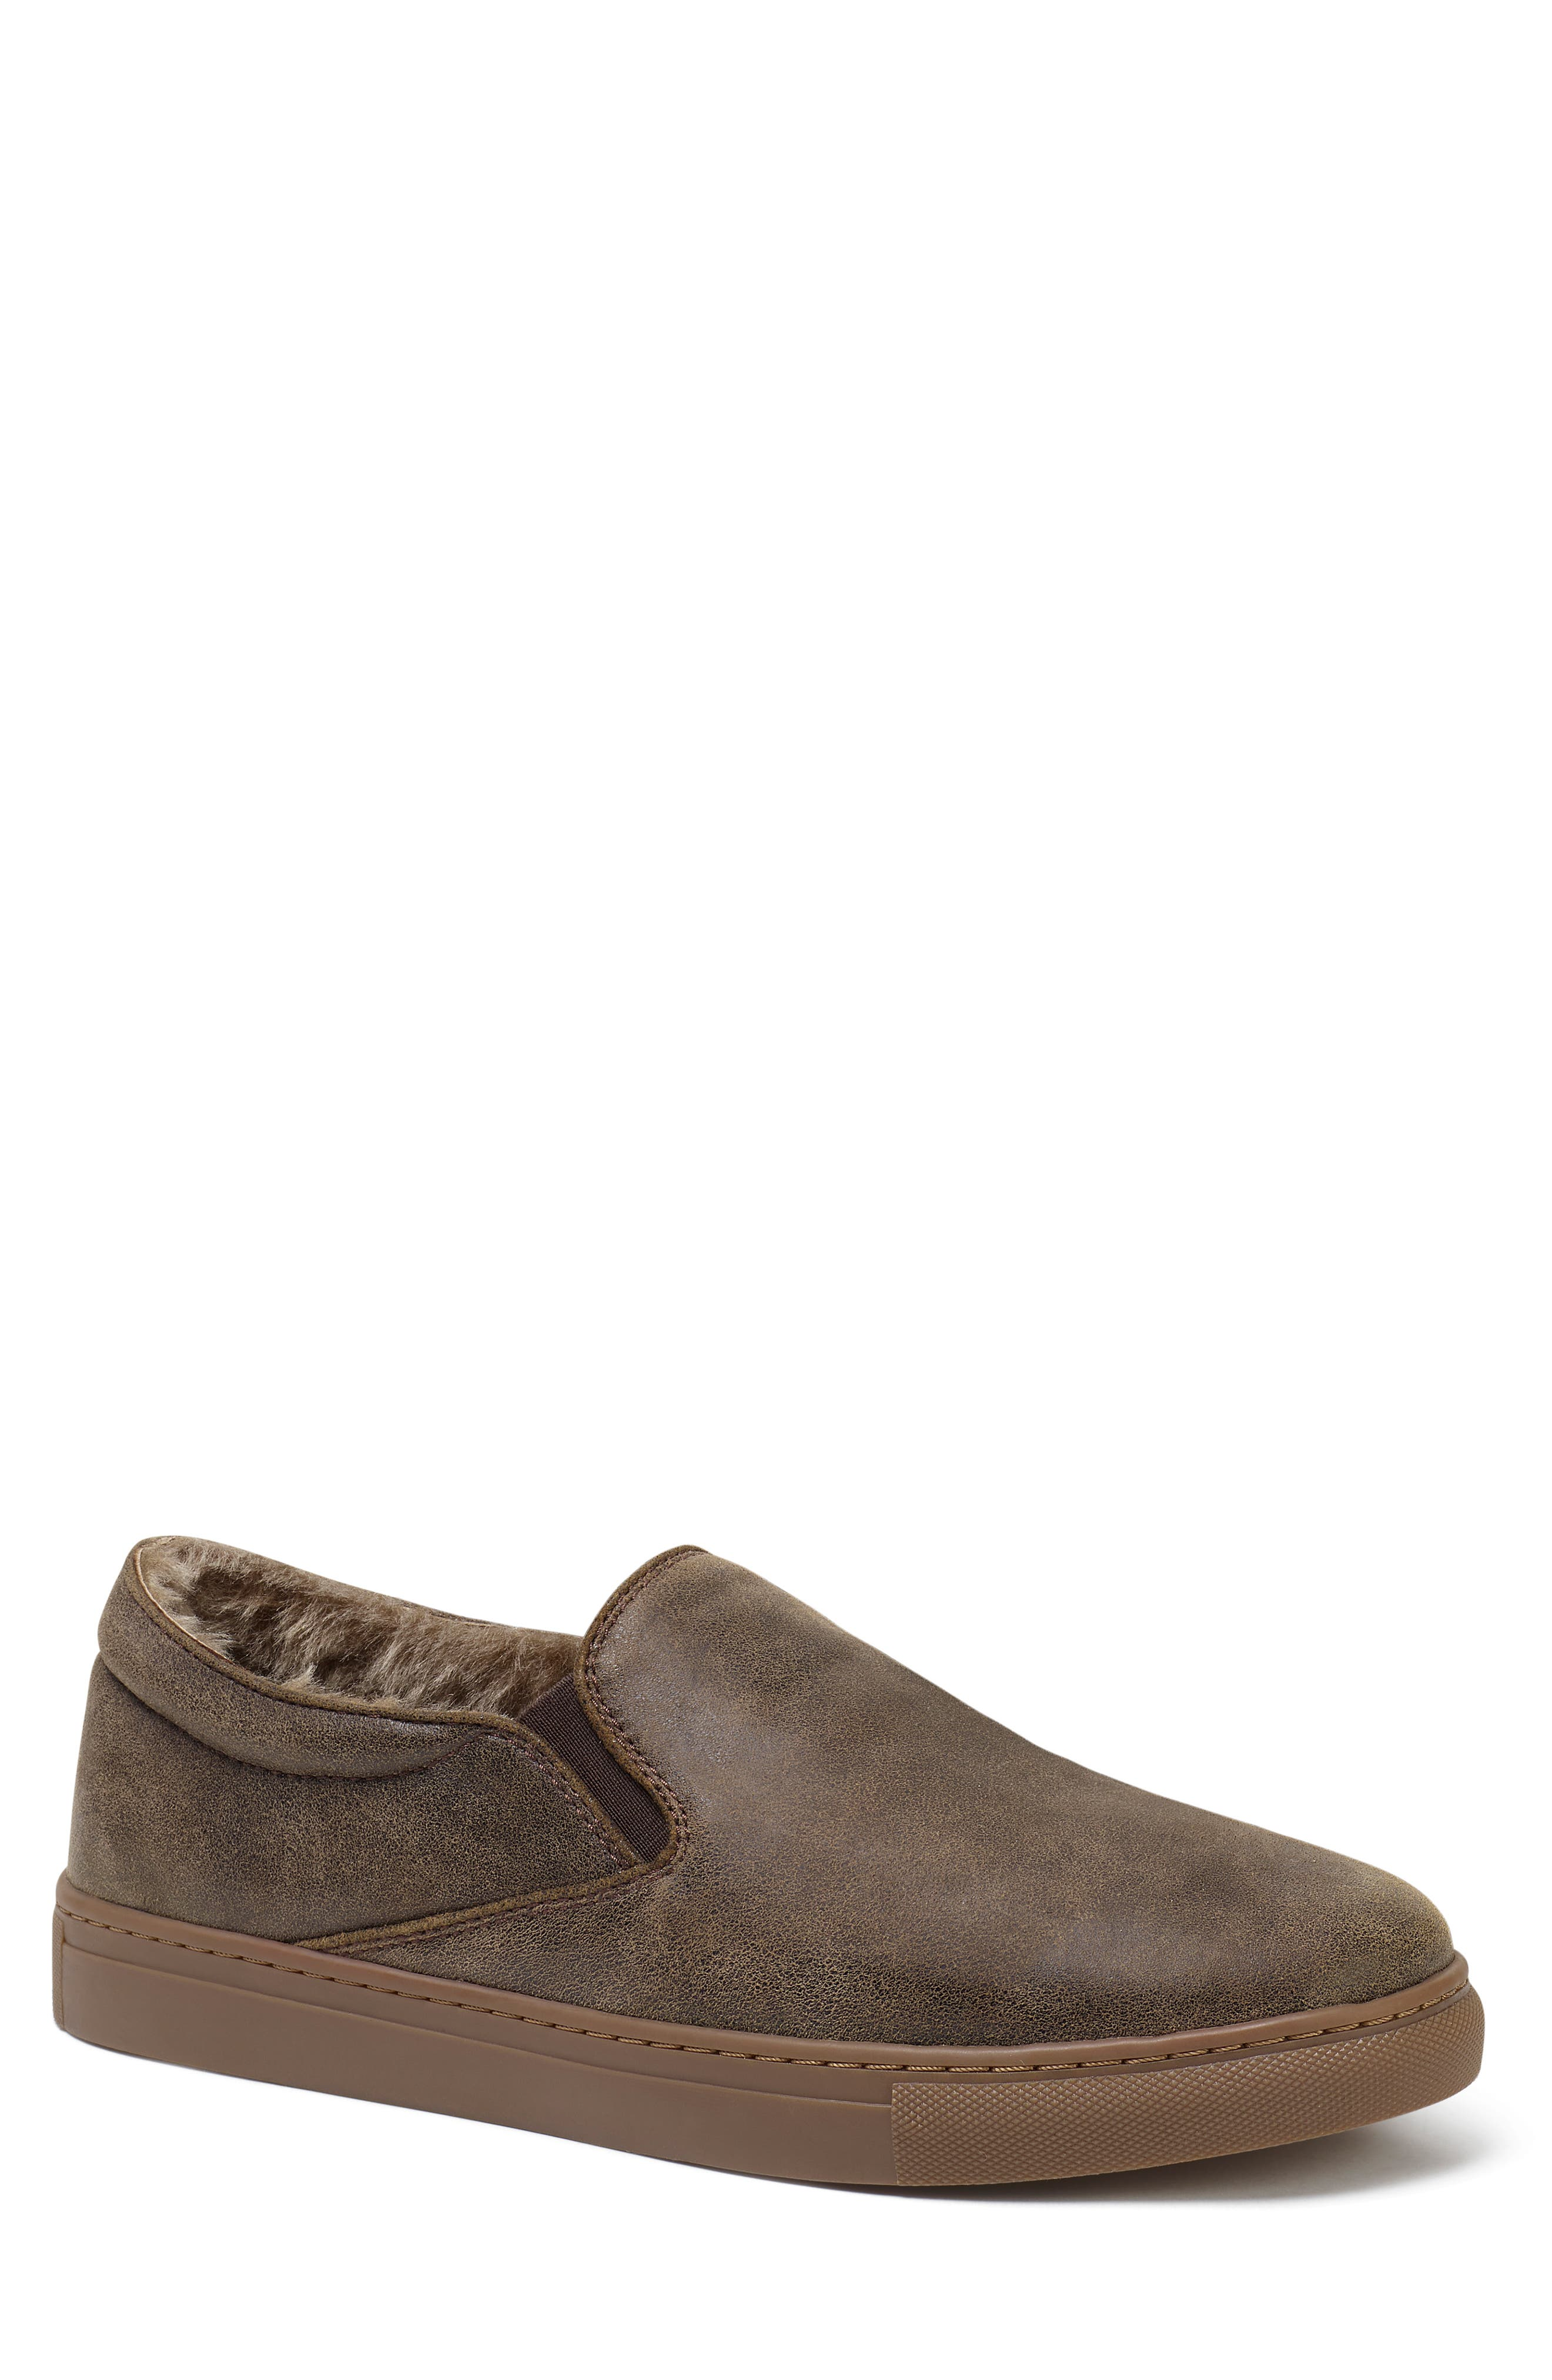 Alex Genuine Shearling Slip-On Sneaker,                             Main thumbnail 1, color,                             BROWN SUEDE